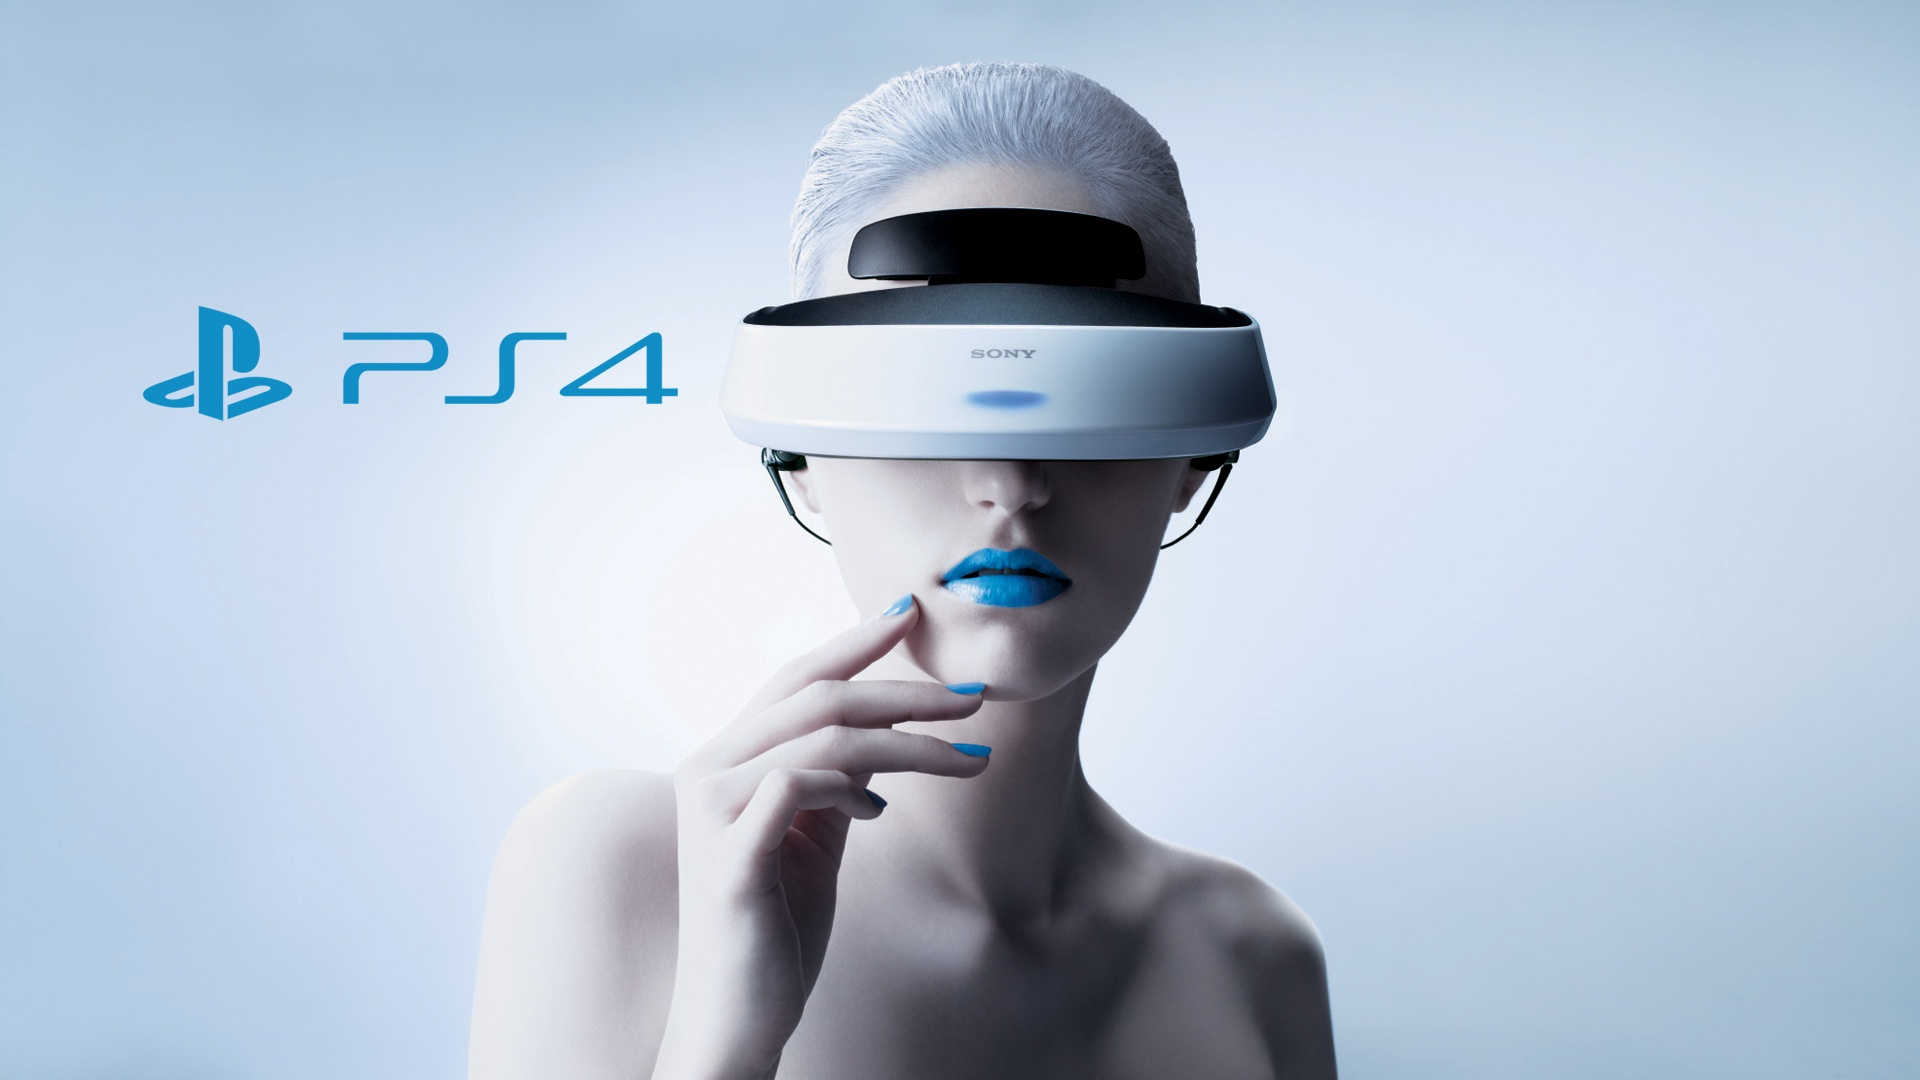 Wallpaper download ps4 - Ps4 Virtual Reality Wallpapers Hd Wallpapers